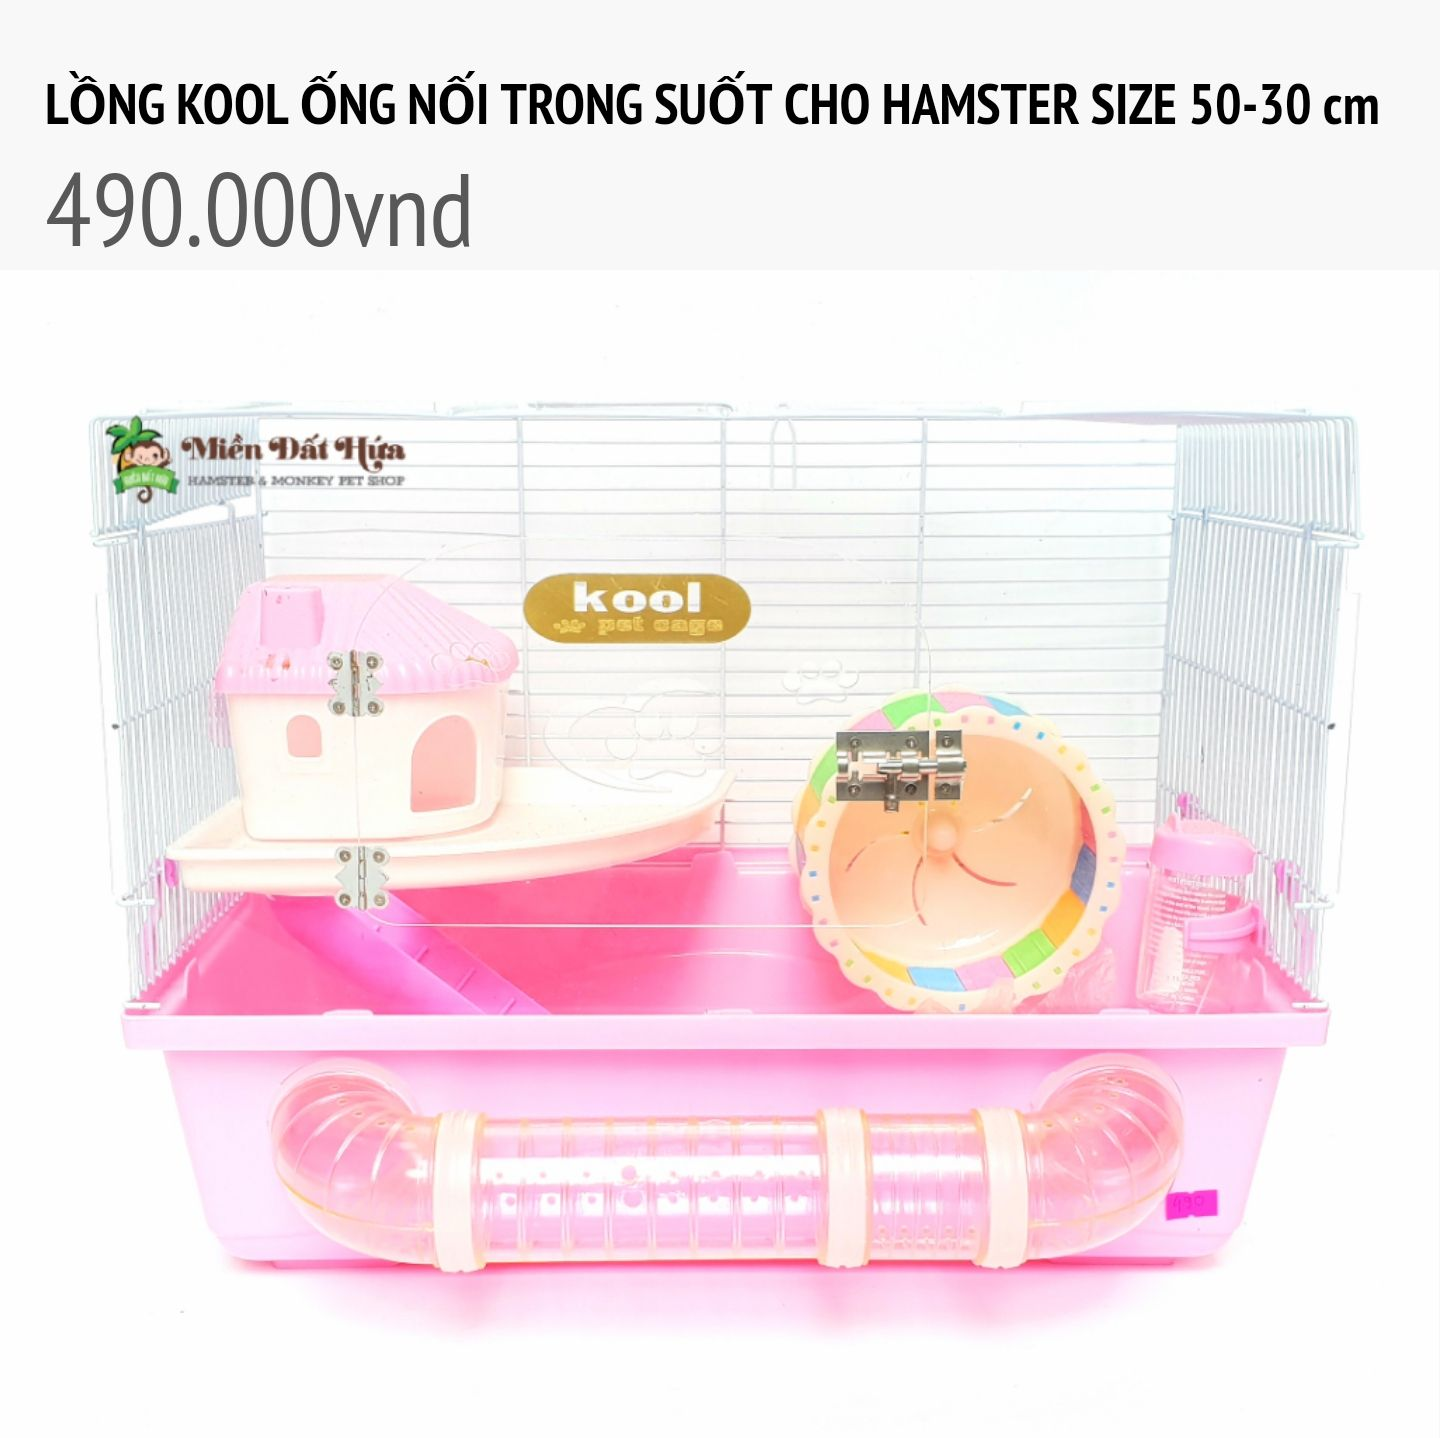 LỒNG kool ống NỐI trong suốt size 50-30 cho hamster